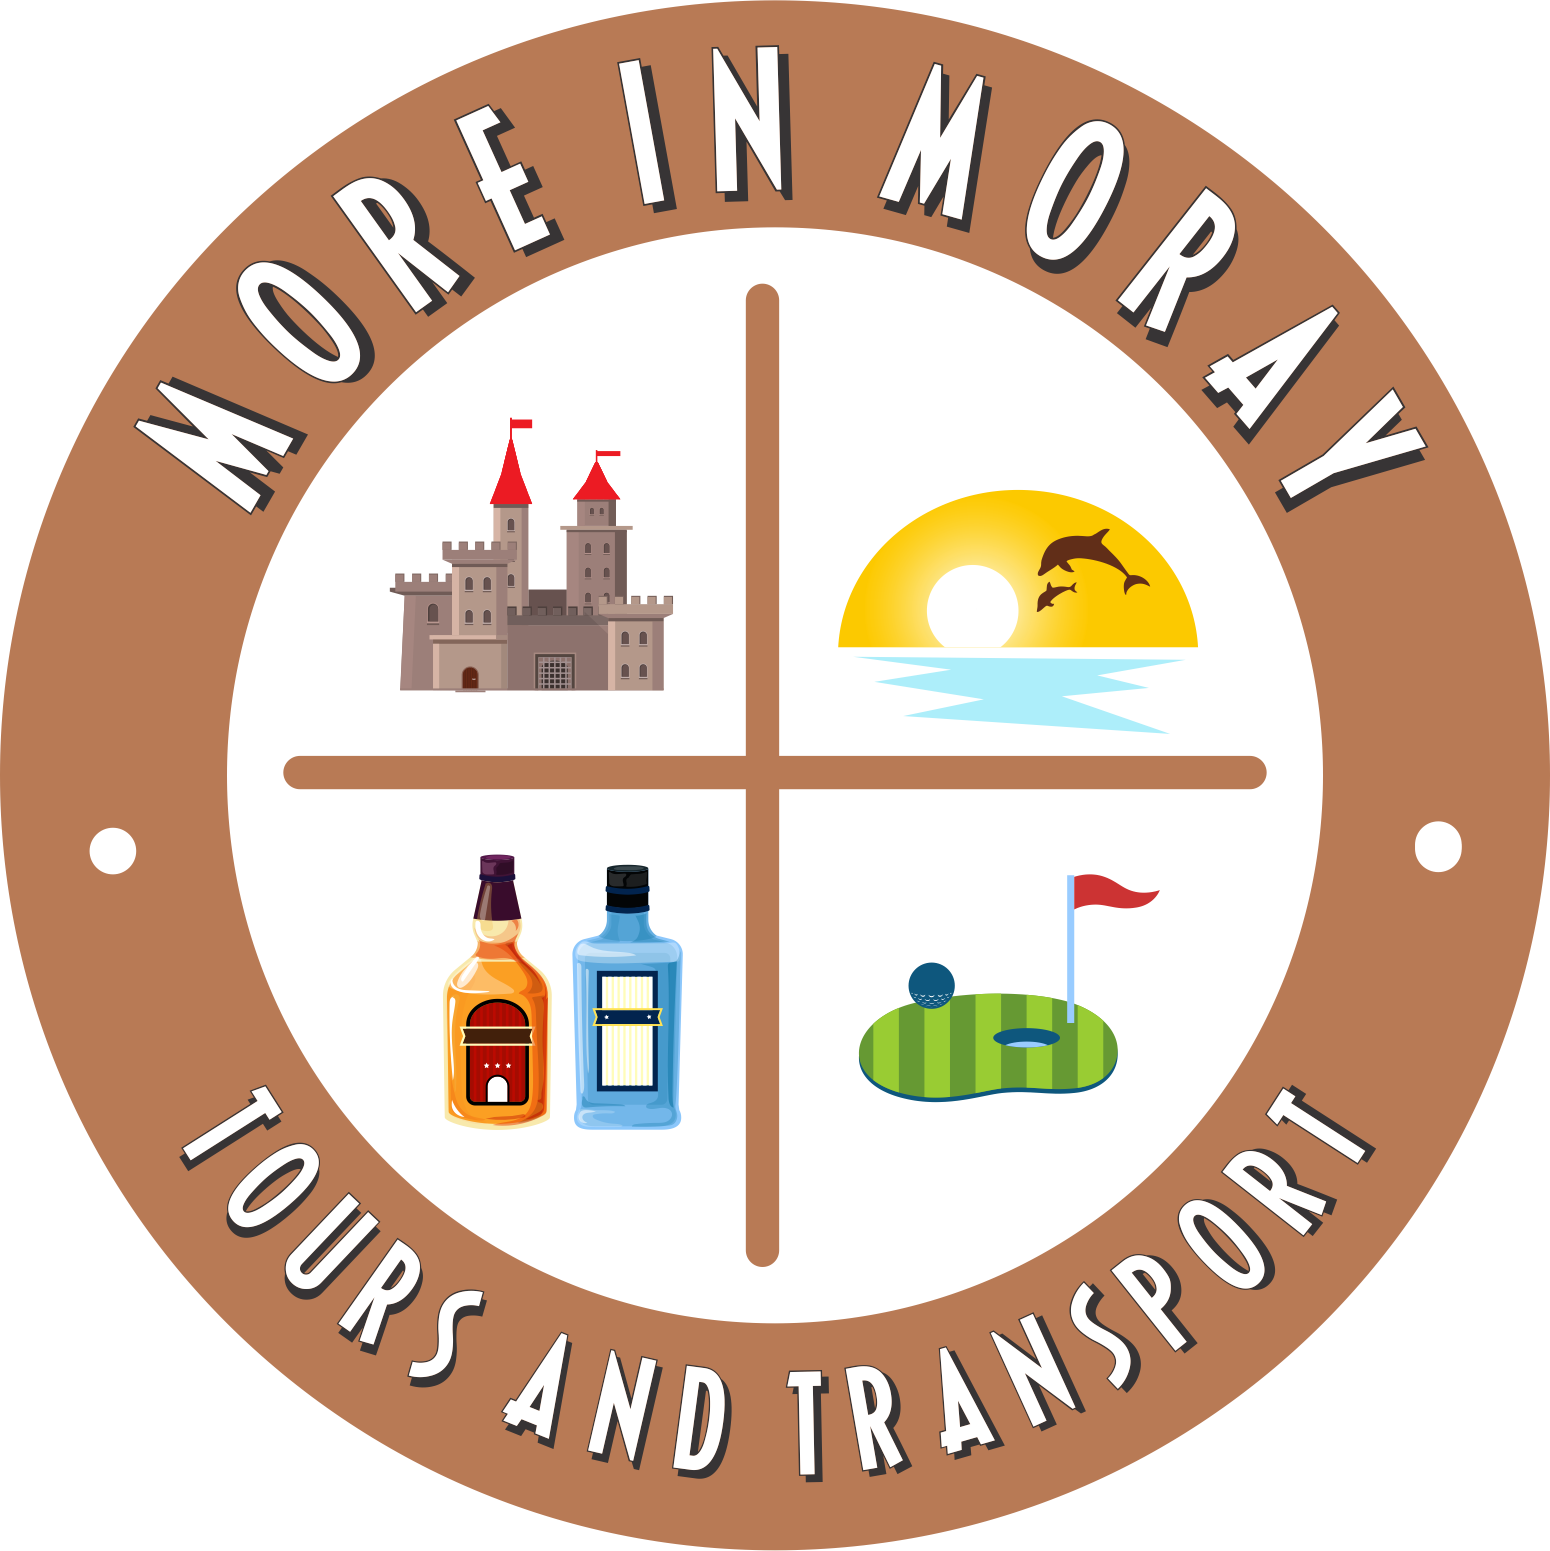 More in Moray Tours and Transport | Social Events - More in Moray Tours and Transport